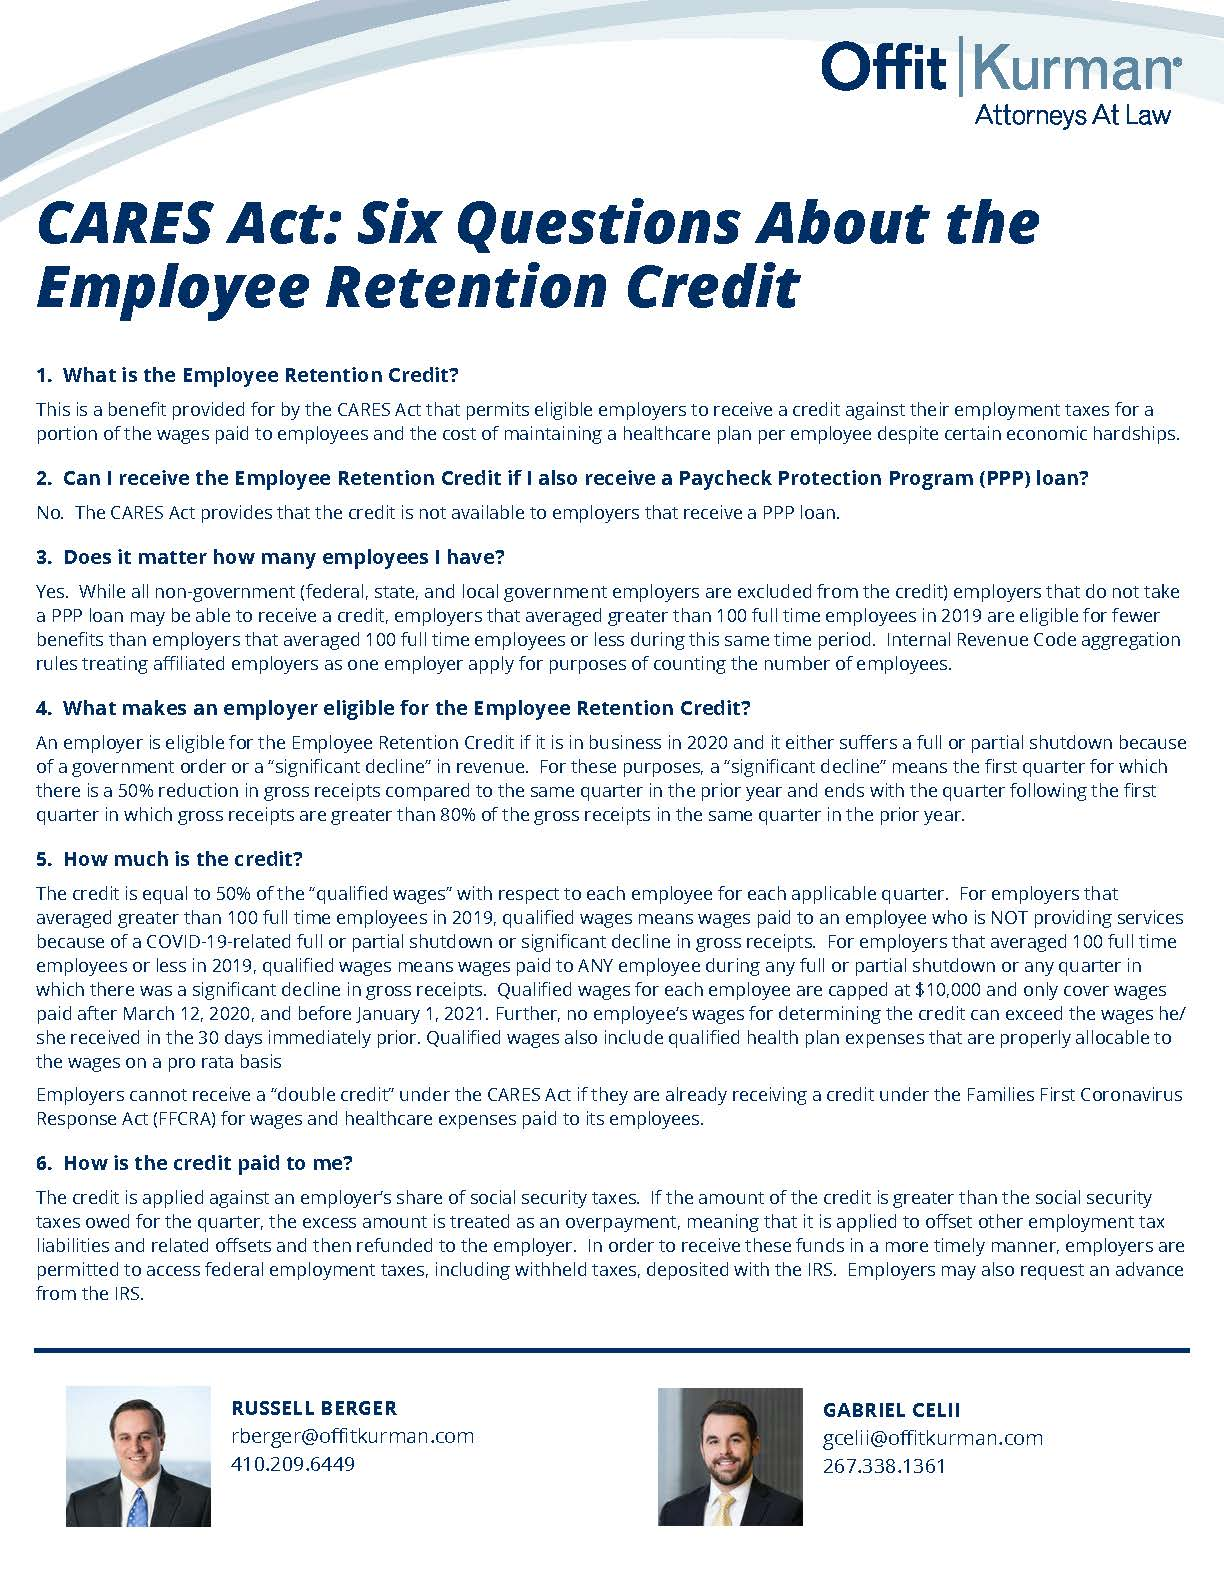 Six Questions About the Employee Retention Credit-040820b